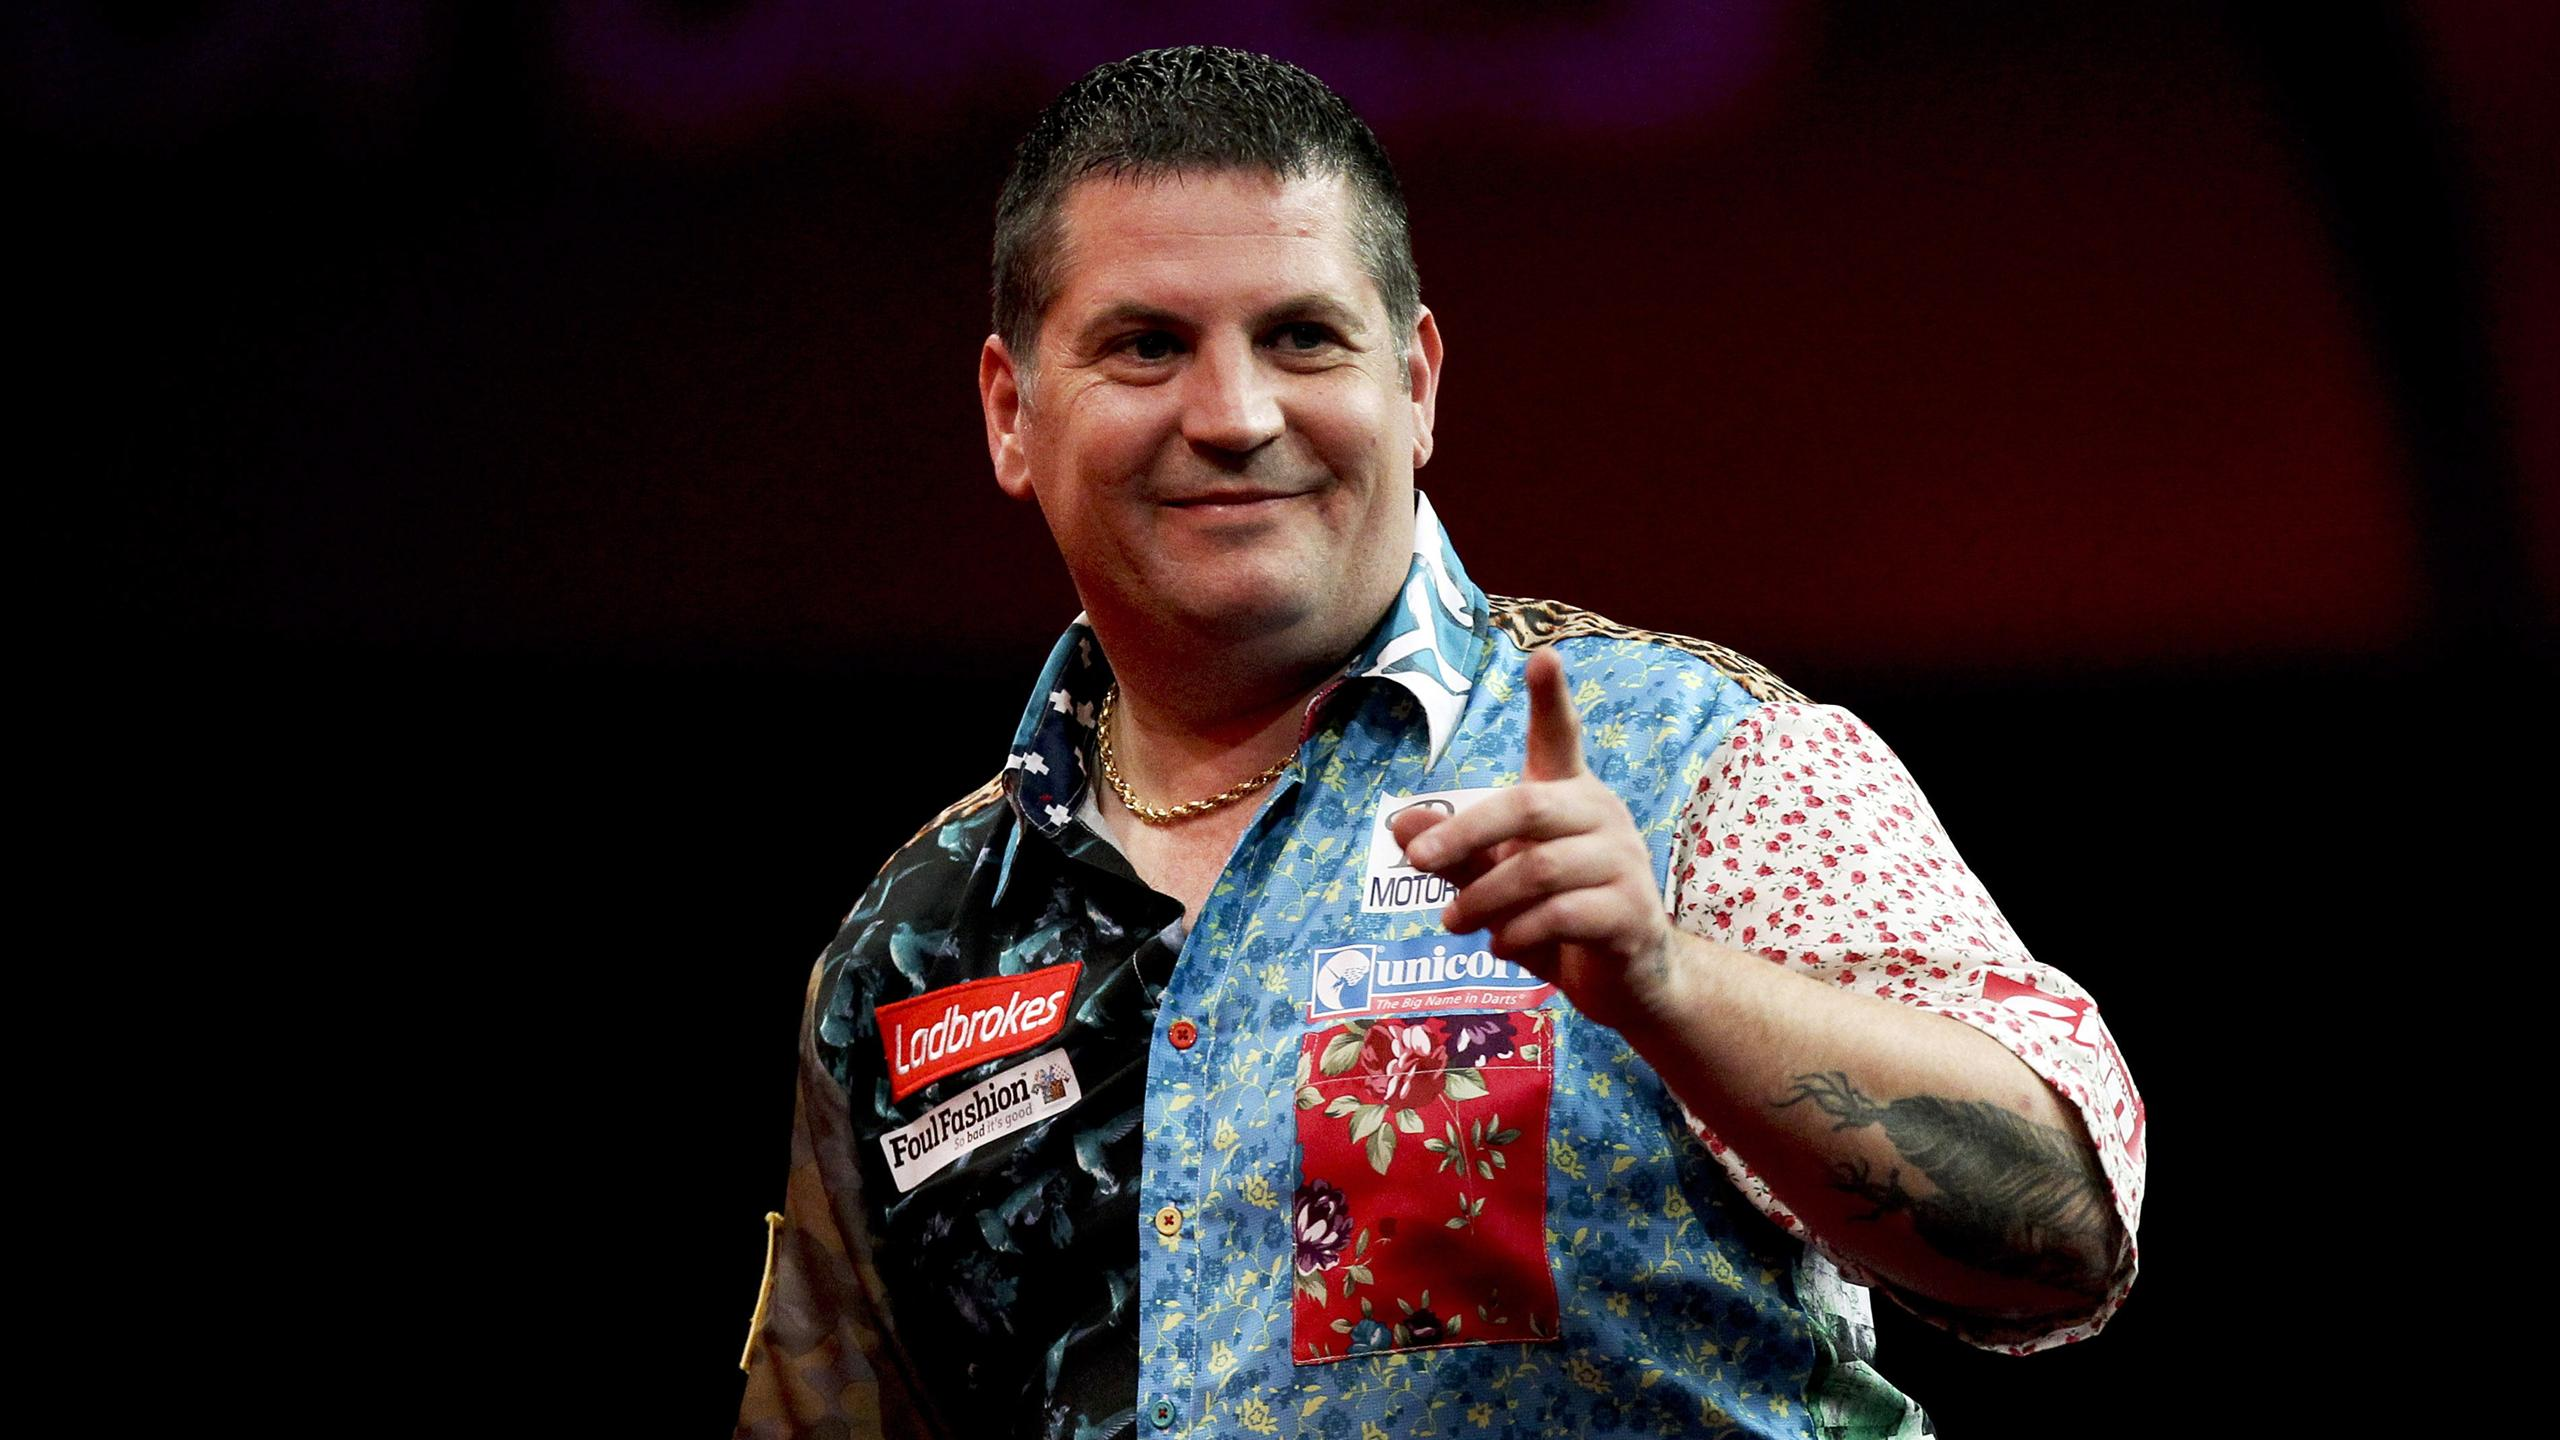 Gary Anderson won his first PDC title with a thrilling 7-6 win over Phil Taylor in the final.